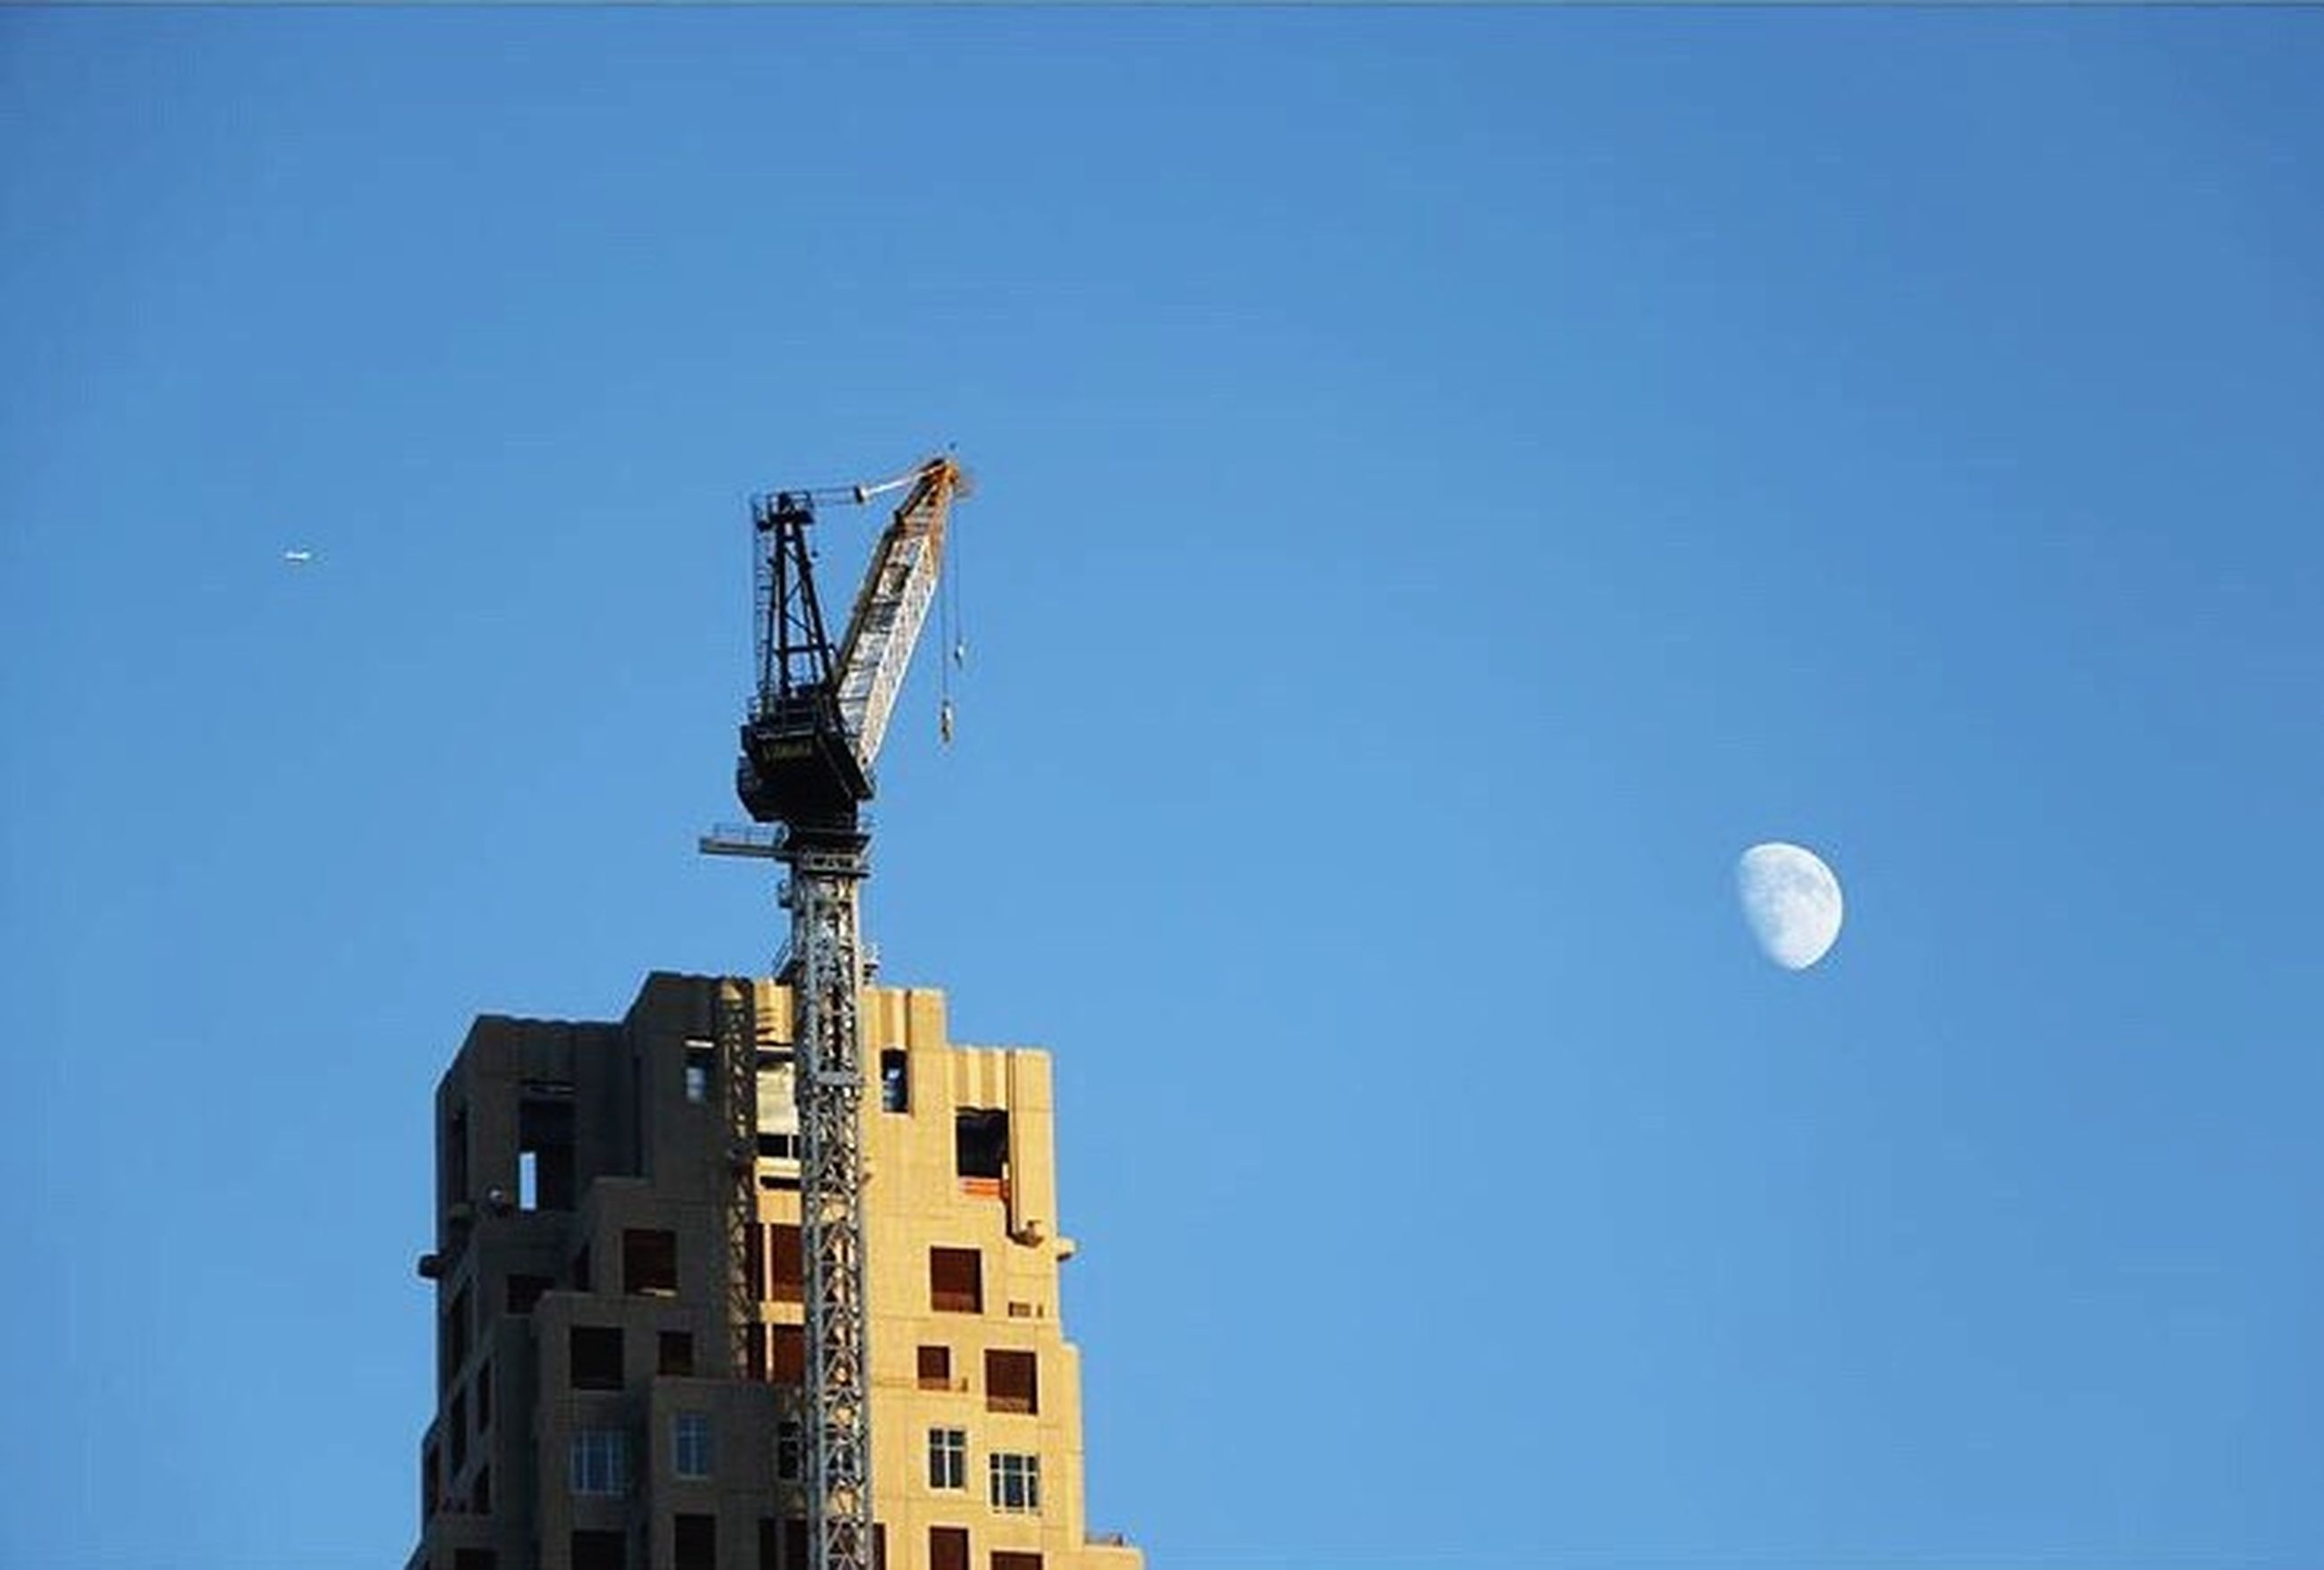 clear sky, low angle view, architecture, built structure, copy space, building exterior, blue, street light, moon, lighting equipment, city, outdoors, tower, building, high section, tall - high, no people, day, sky, crane - construction machinery